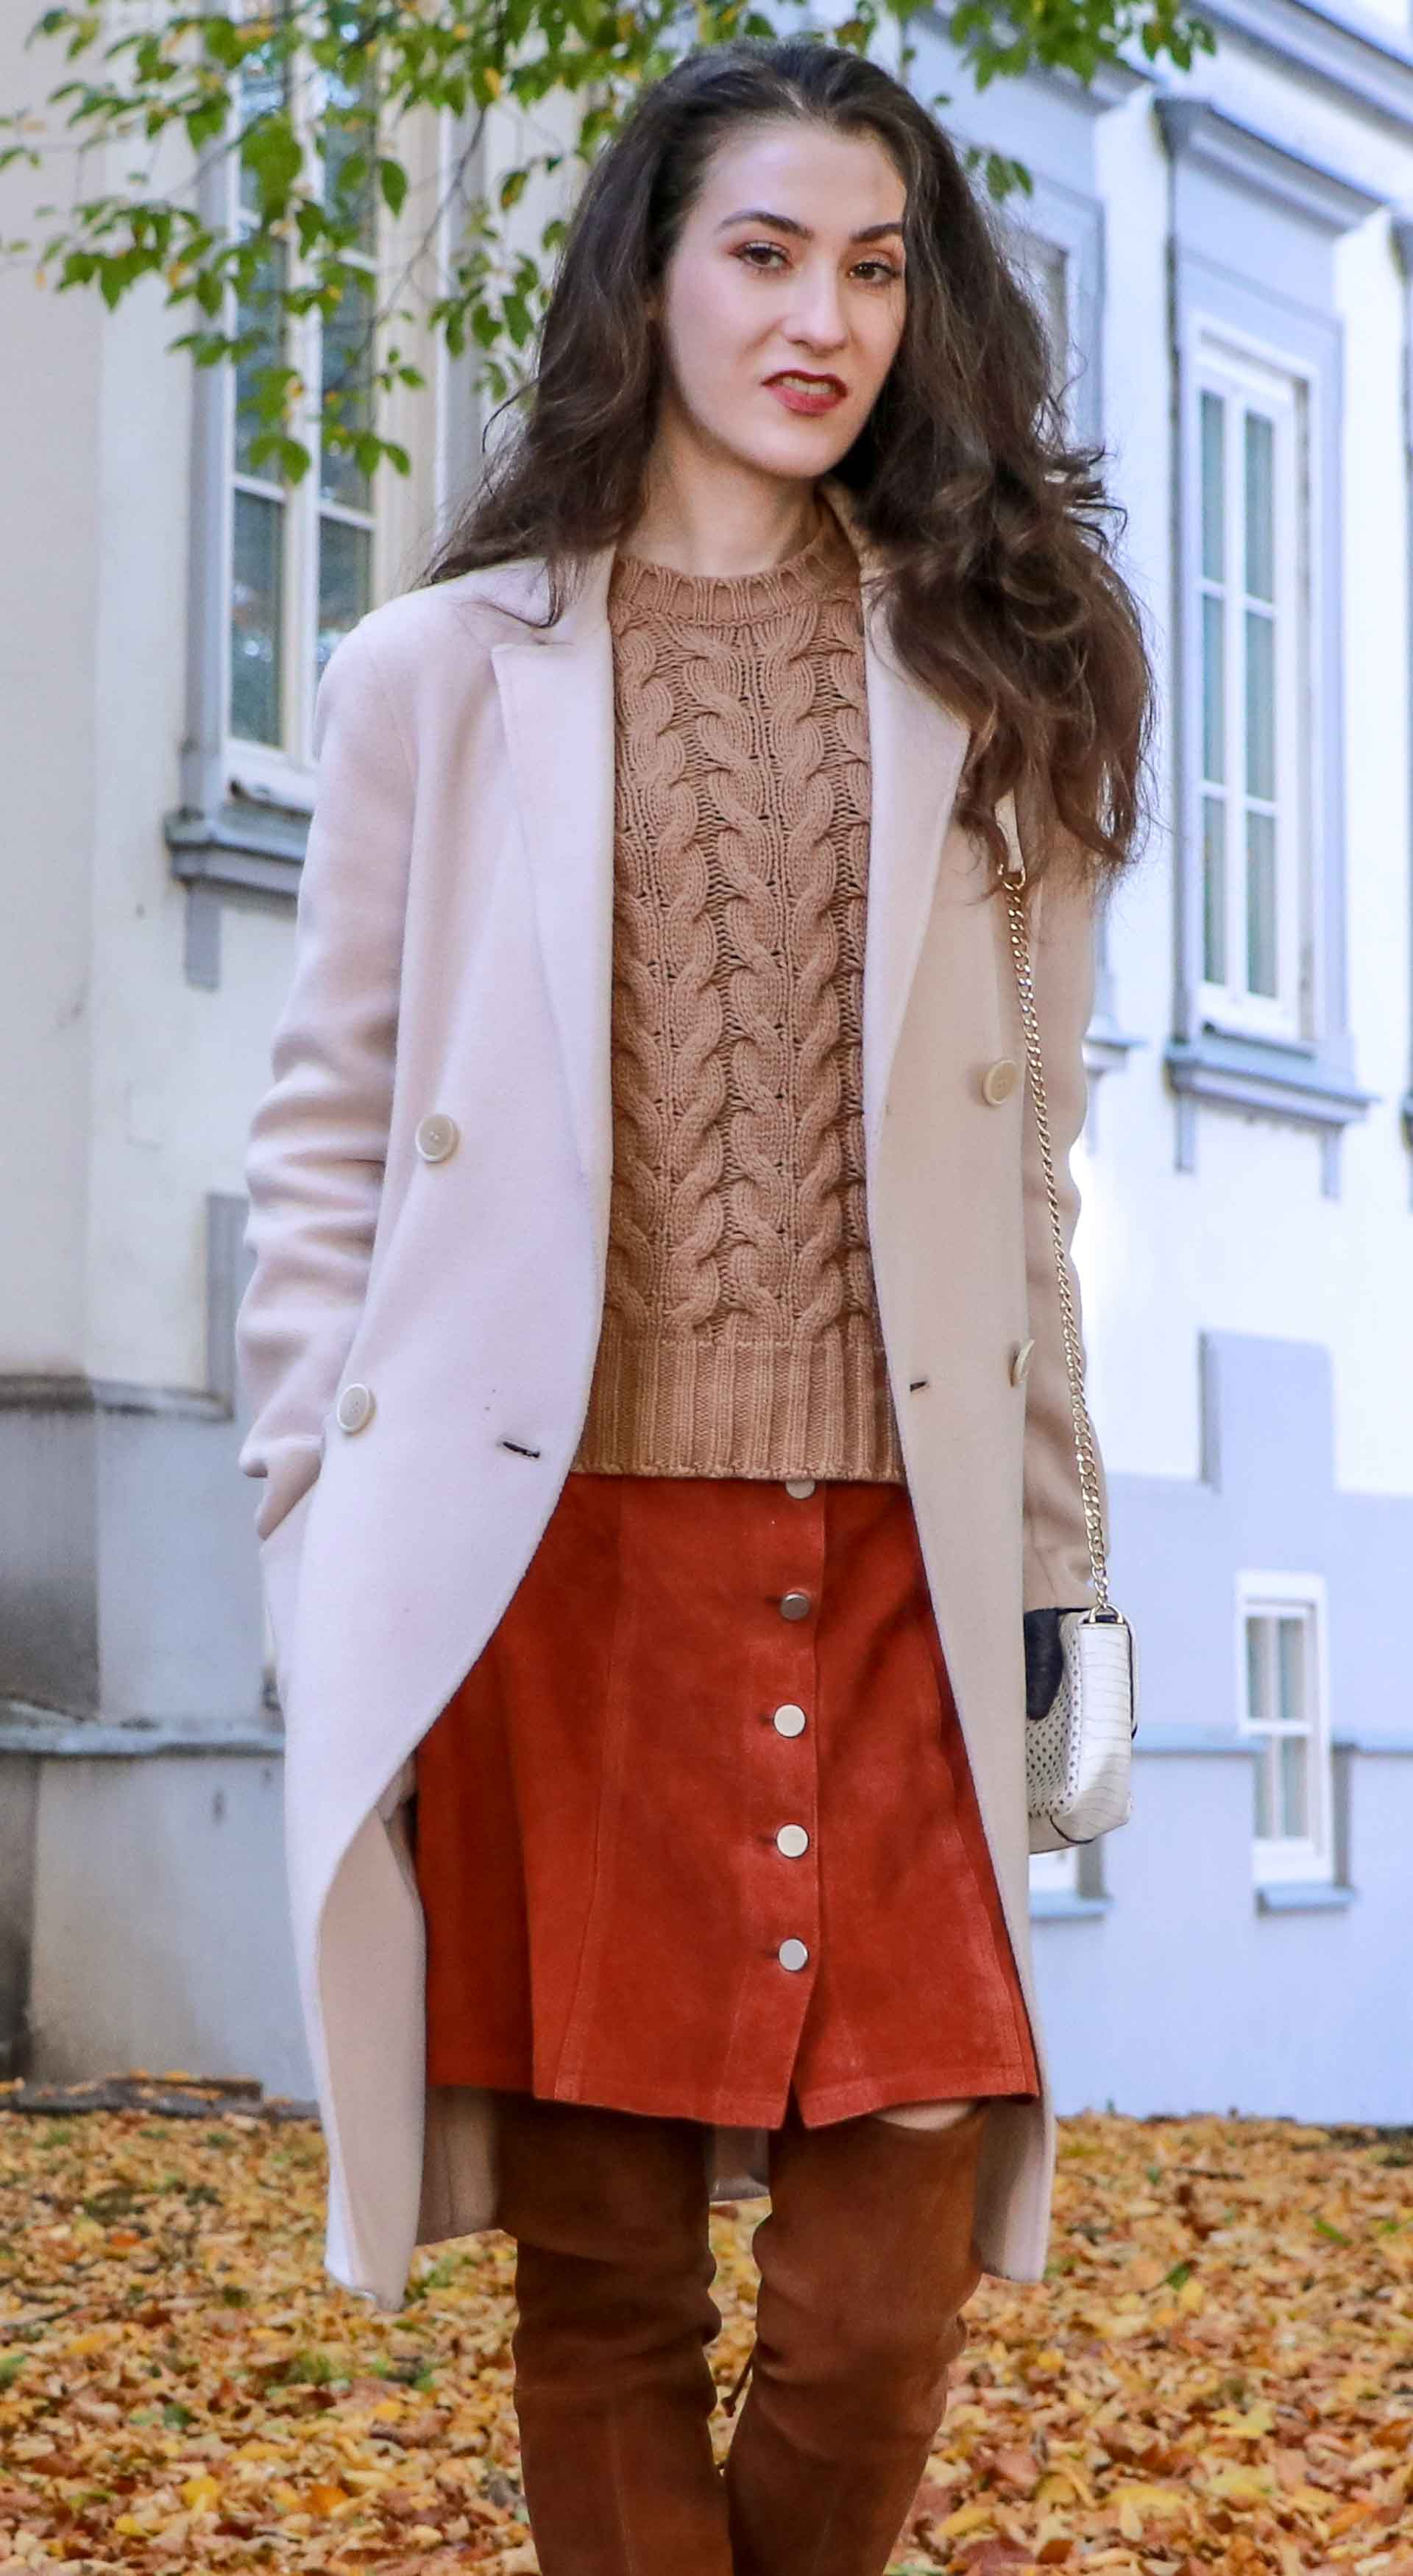 Beautiful Slovenian Fashion Blogger Veronika Lipar of Brunette from Wall dressed in Max Mara camel cable knit sweater, front button brown suede skirt, Stuart Weitzman brown over the knee boots, Max Mara coat in fall